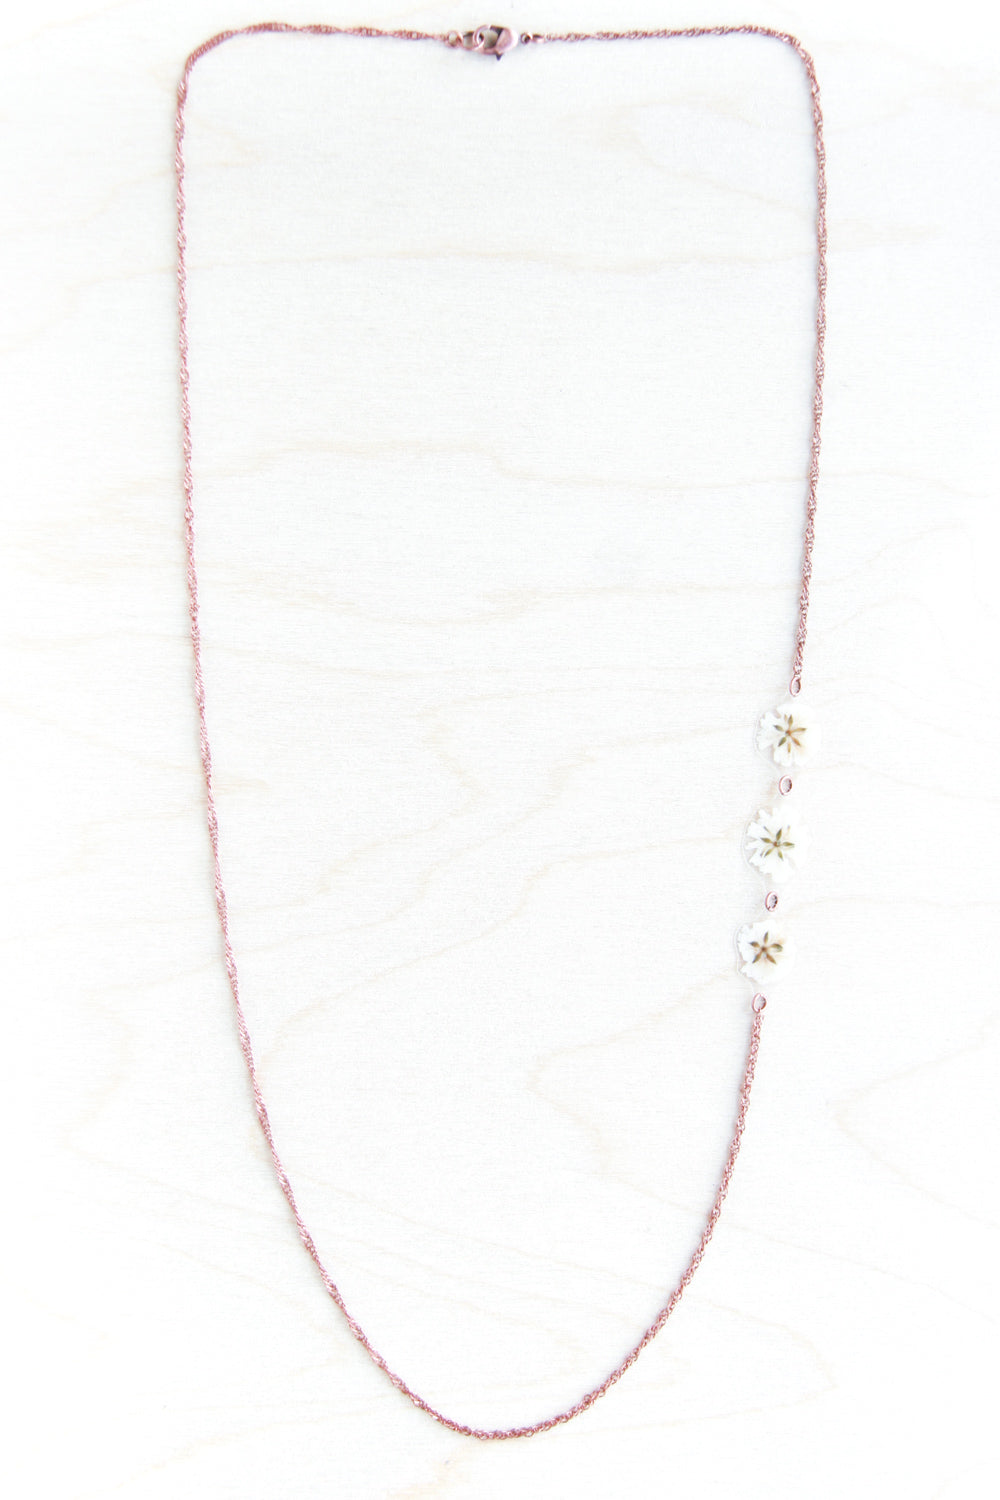 White Baby's Breath Flower Asymmetrical Necklace